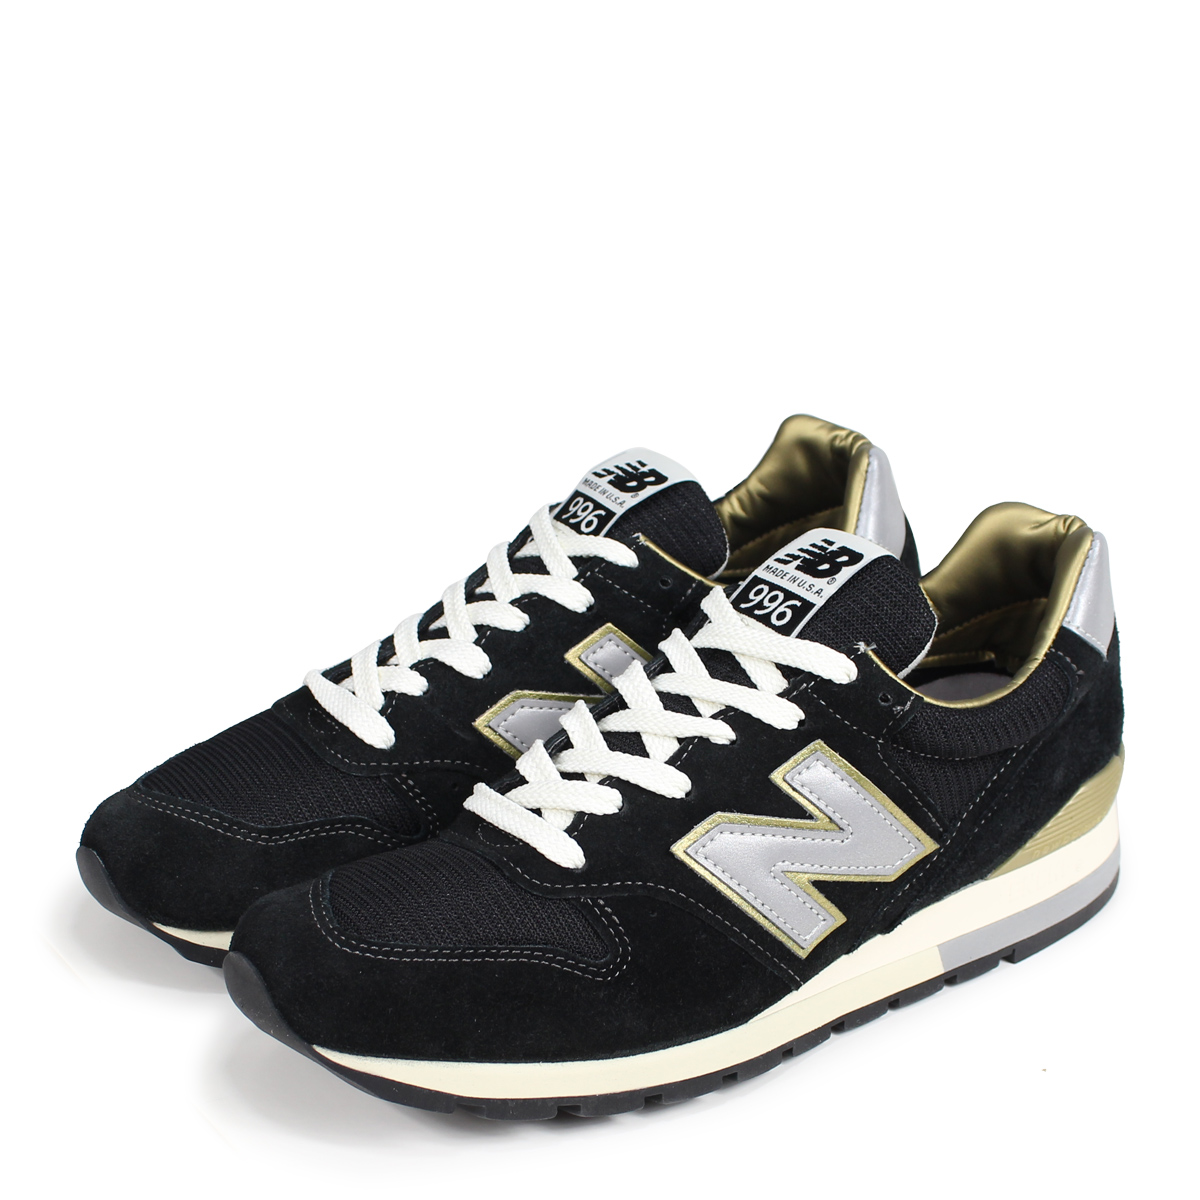 New Balance NEW BALANCE M996 MADE IN U.S.A. FOOT LOCKER comment color black gold suede NEWBALANCE foot locker men sneakers of the 30th anniversary of